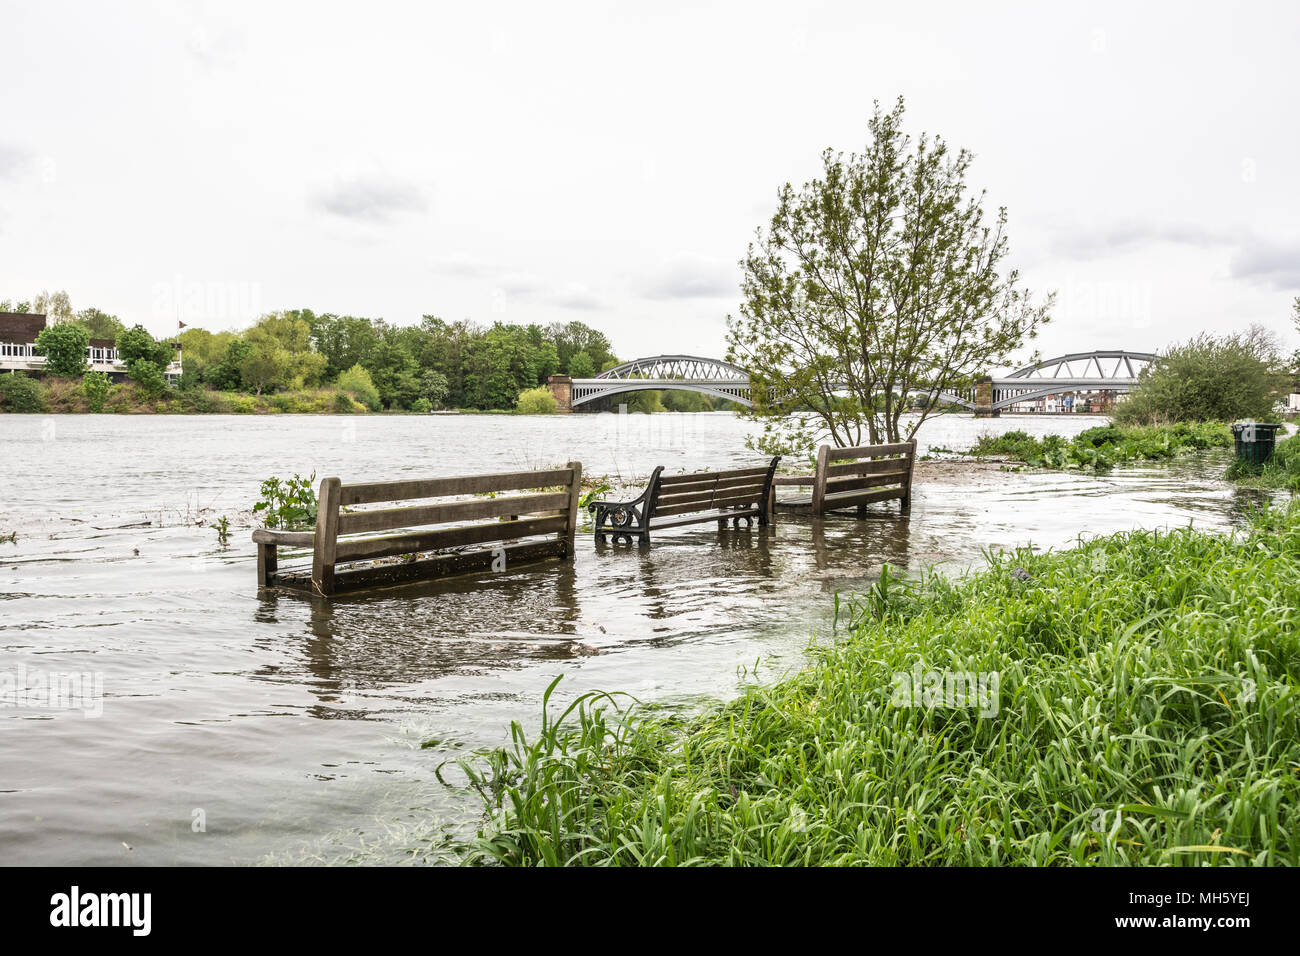 London, England, UK. 30 April, 2018.  Flooding near the former Stag Brewery at Mortlake, London. The Thames Tides website issued a flood alert today for some Thames Riverside properties today. Credit: Benjamin John/Alamy Live News - Stock Image